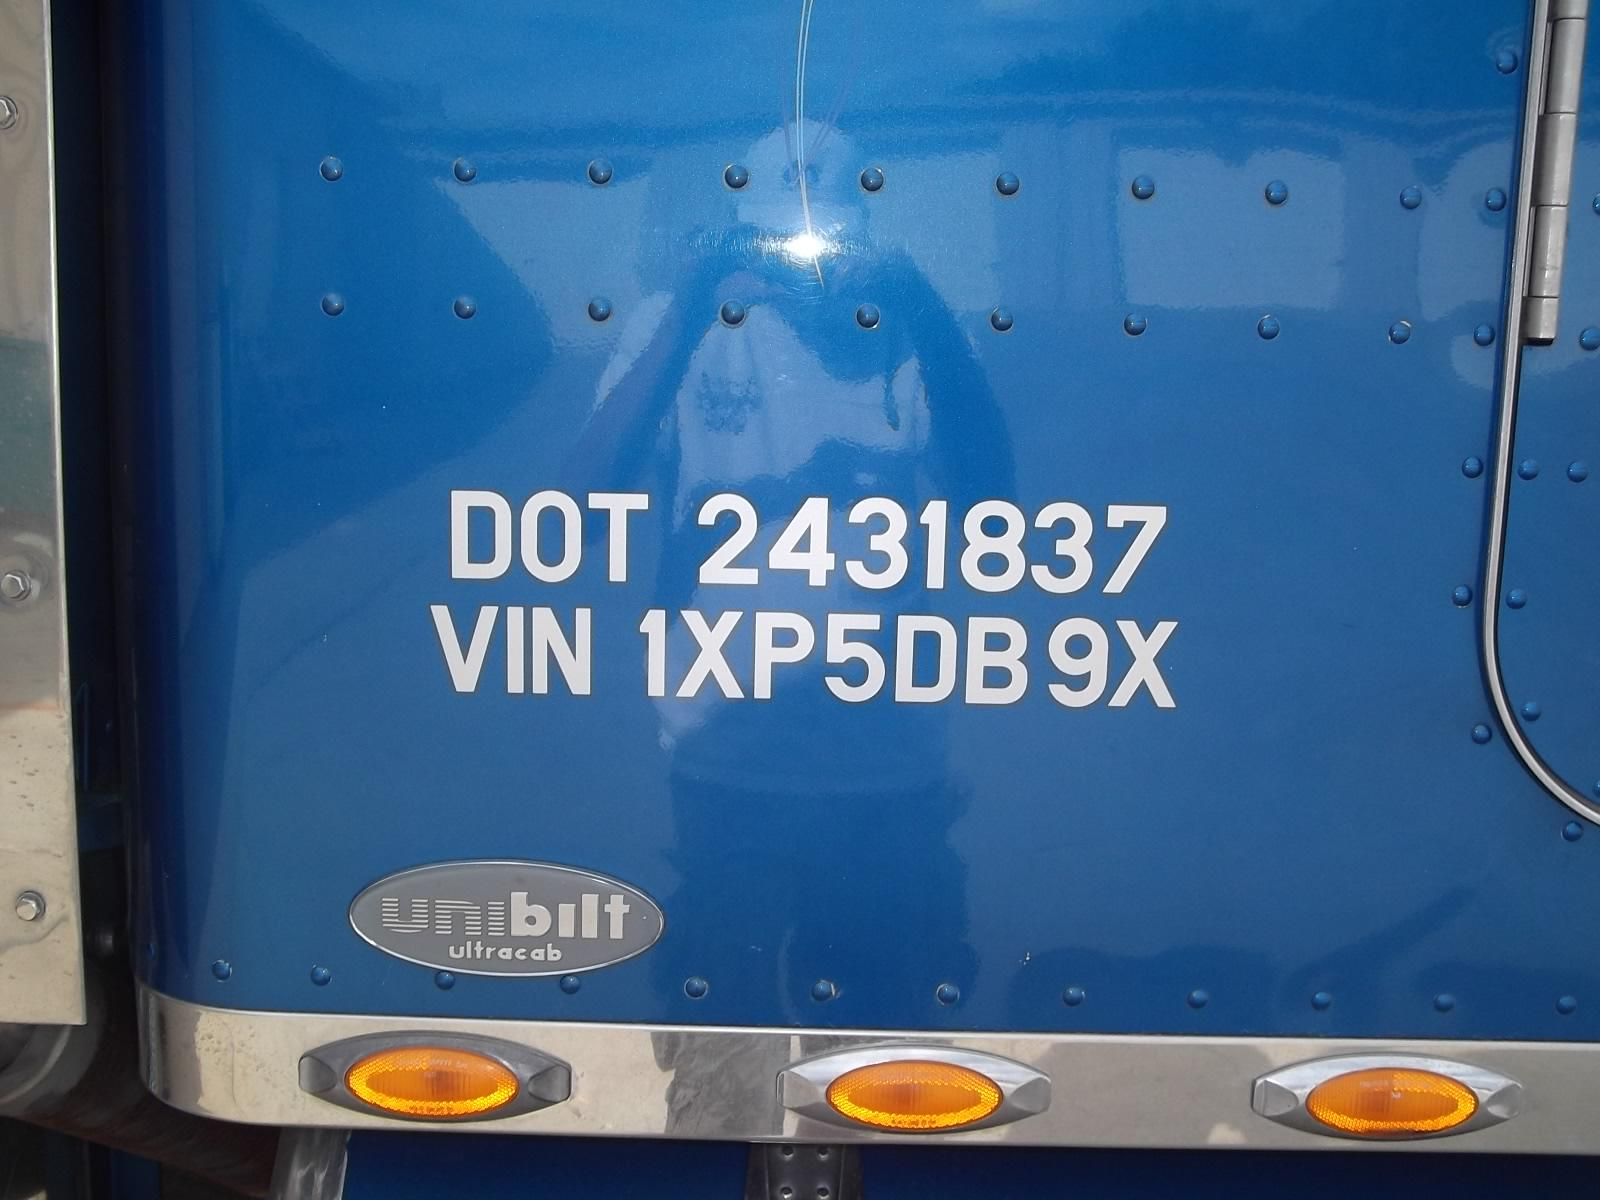 Truck DOT and VIN Number Decals.jpg